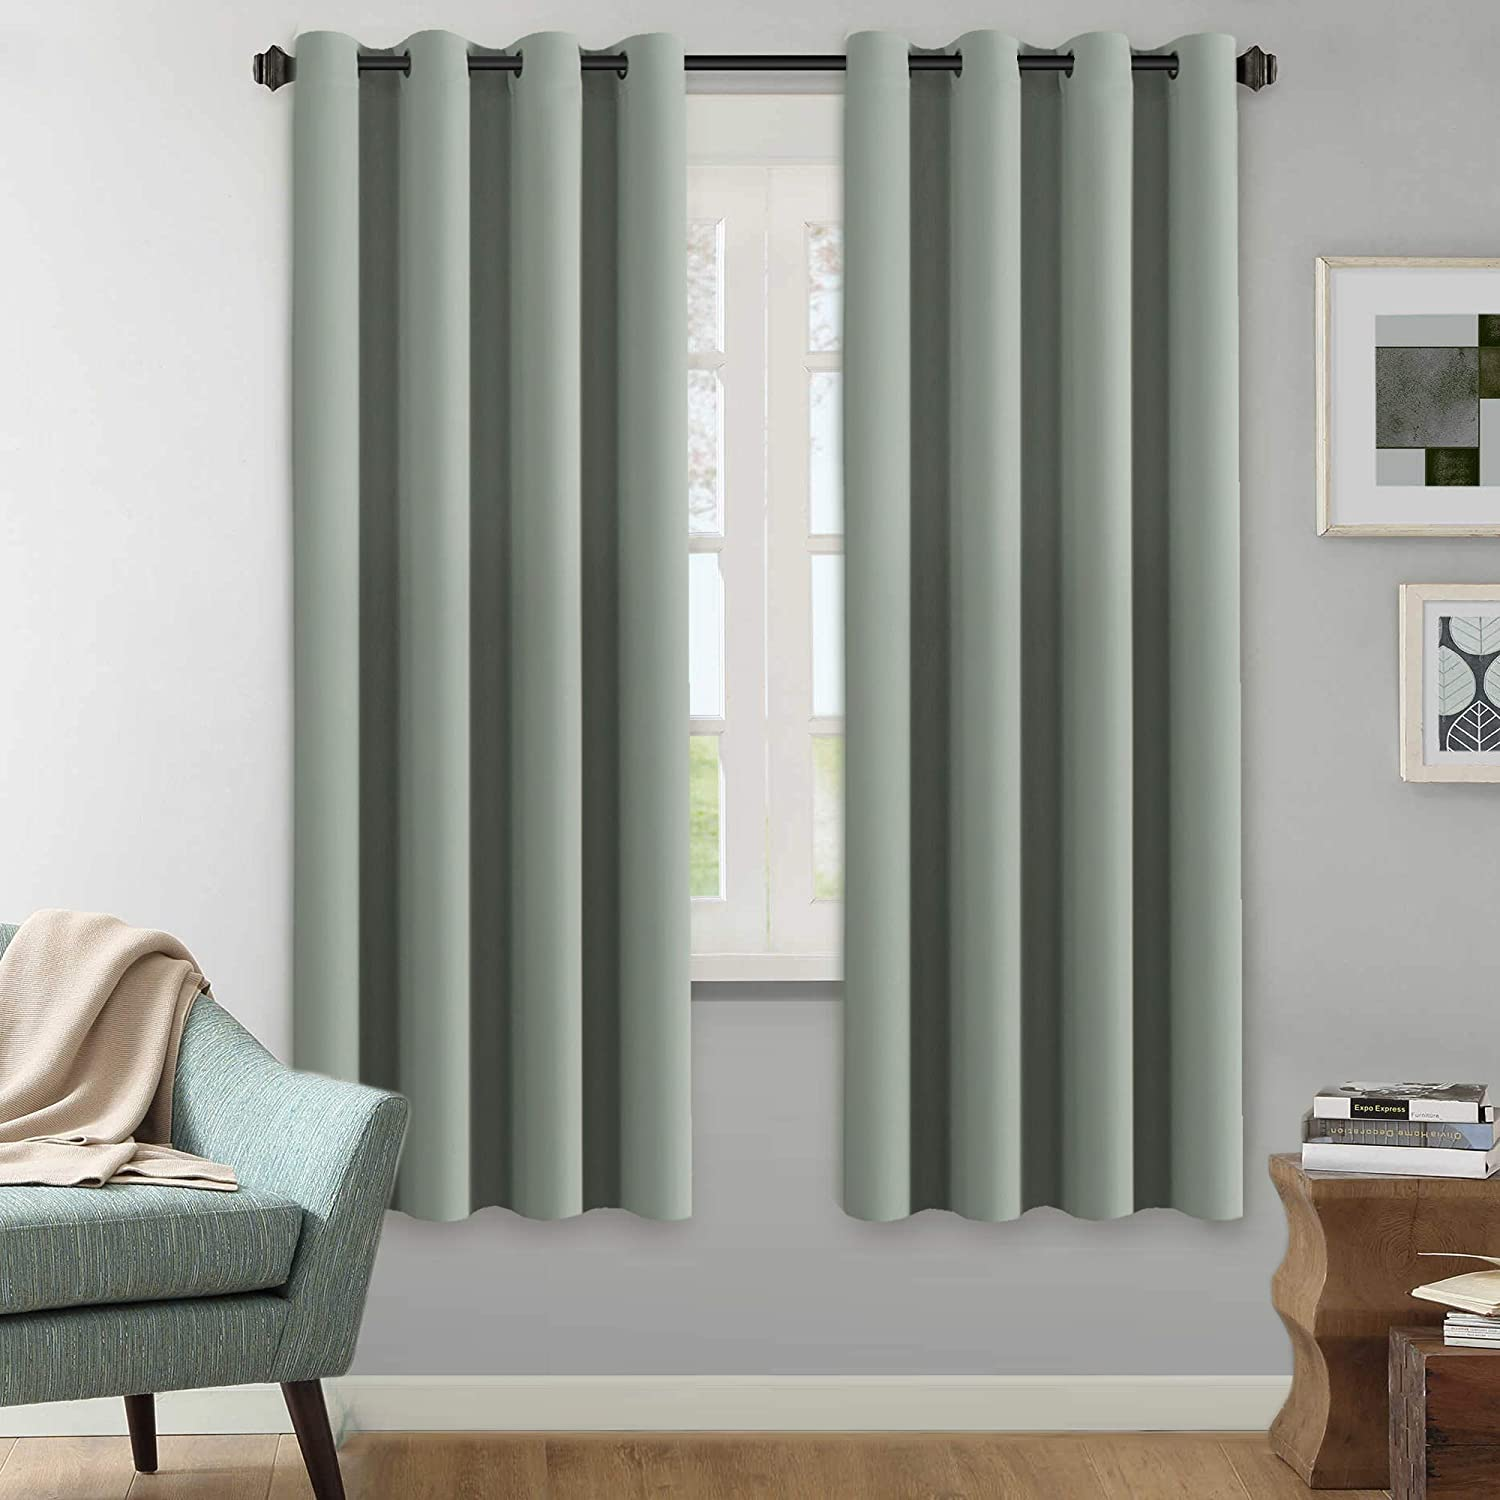 H.VERSAILTEX Winter Season Thermal Insulated Nickel Grommet Blackout Curtains/Draperies for Bedroom/Living Room – 2 Panels Set – 52×72 Inch – Solid Sage Pattern